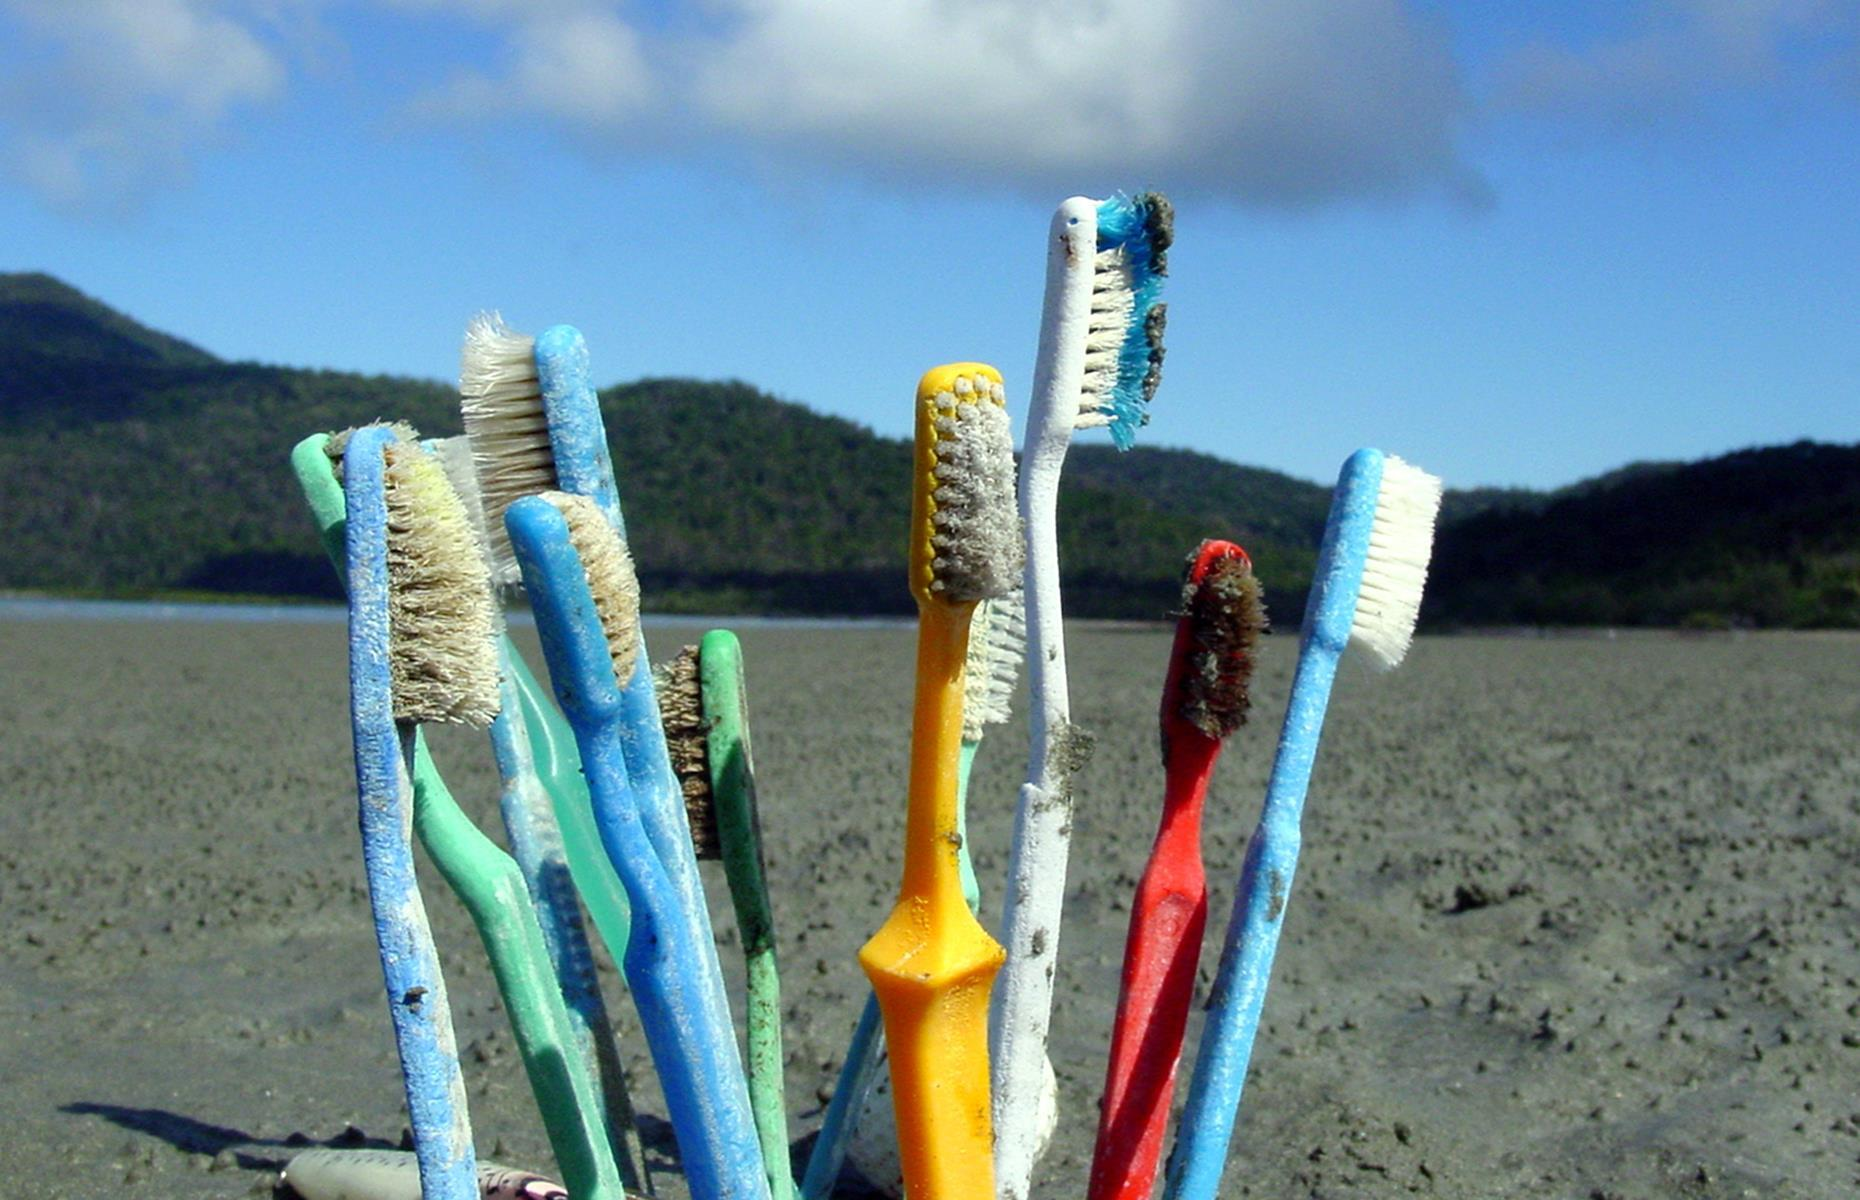 Slide 20 of 33: Unfortunately, washed-up plastic on beaches is far from a strange sight but a bizarre number of worn toothbrushes were found at Genesta Bay in Queensland's Whitsunday Islands. These were collected by a skipper at eco-resort The Whitsunday Wilderness Lodge as part of its clean-up excursions. Take a look at more natural wonders facing a perilous future.